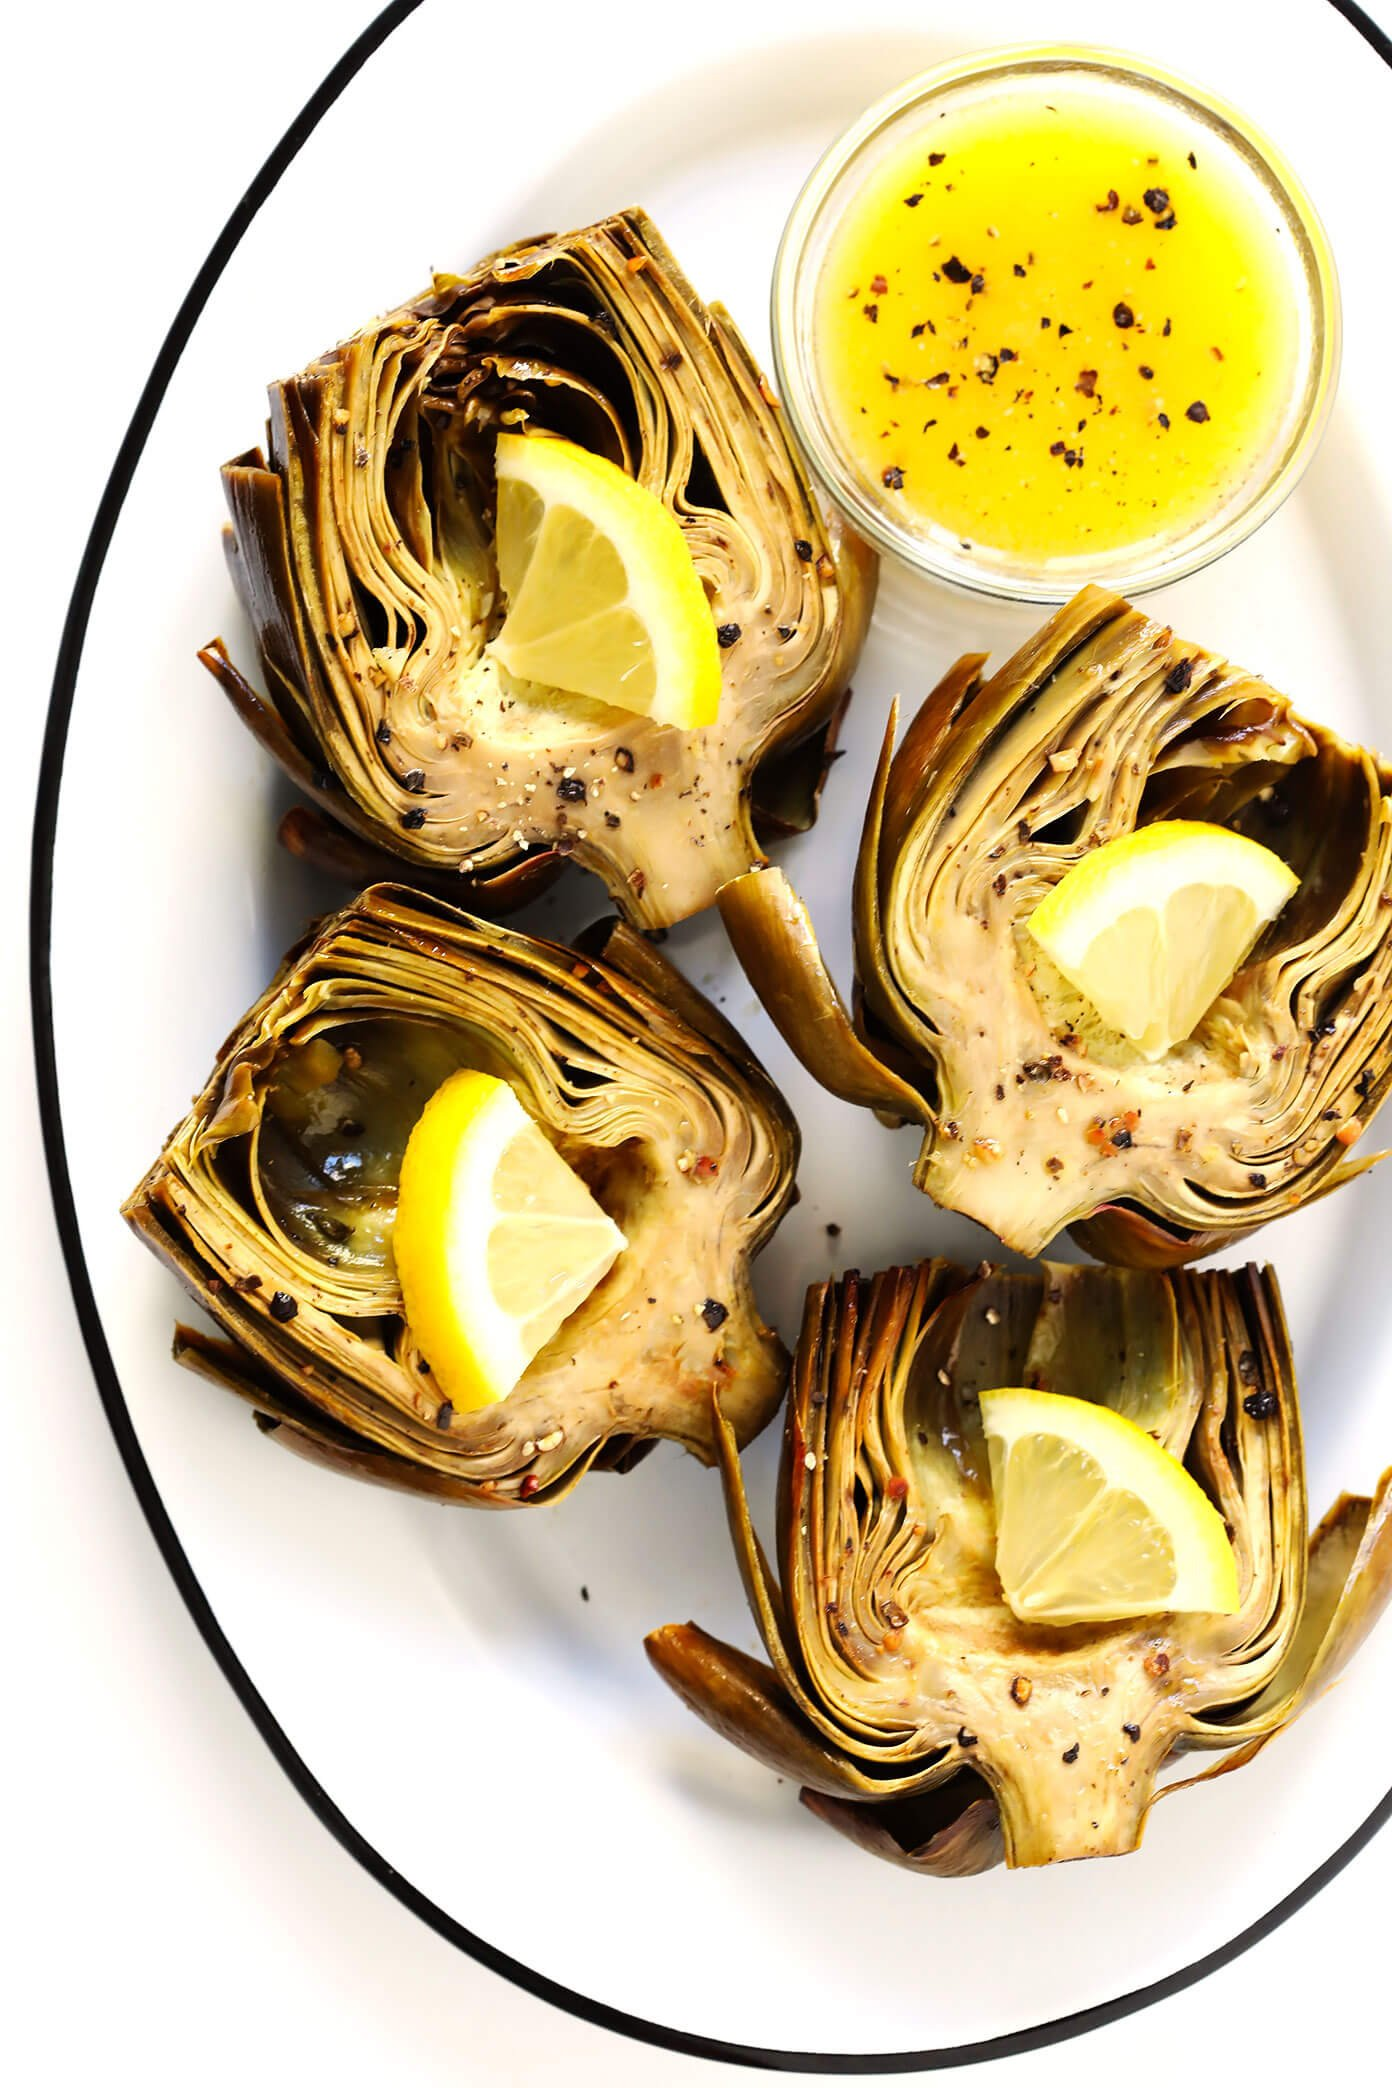 Oven Roasted Artichokes with Lemon Butter Sauce